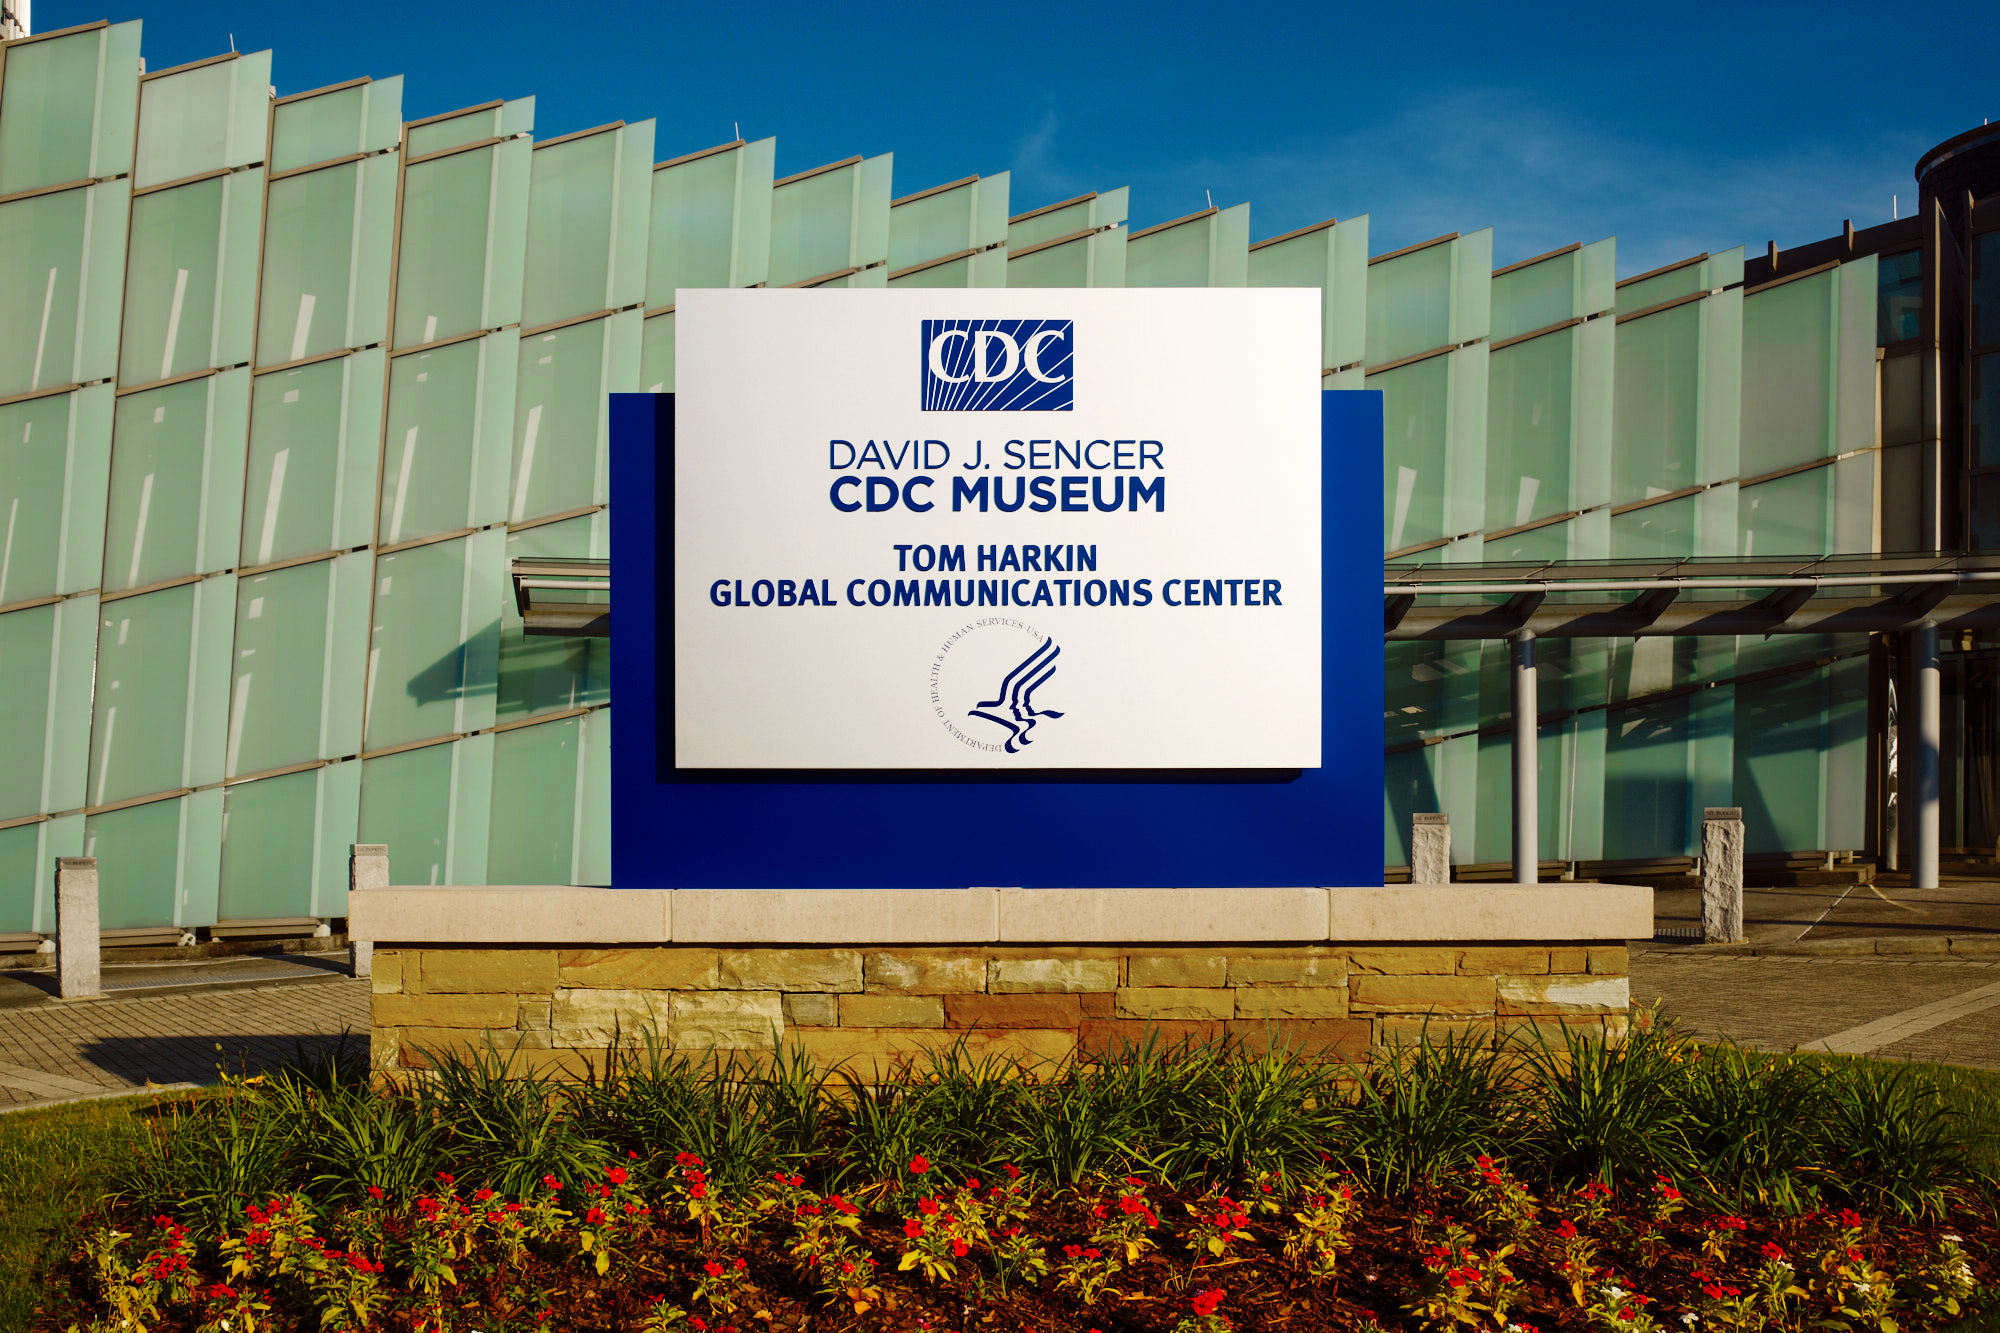 Plan your visit to the CDC Museum